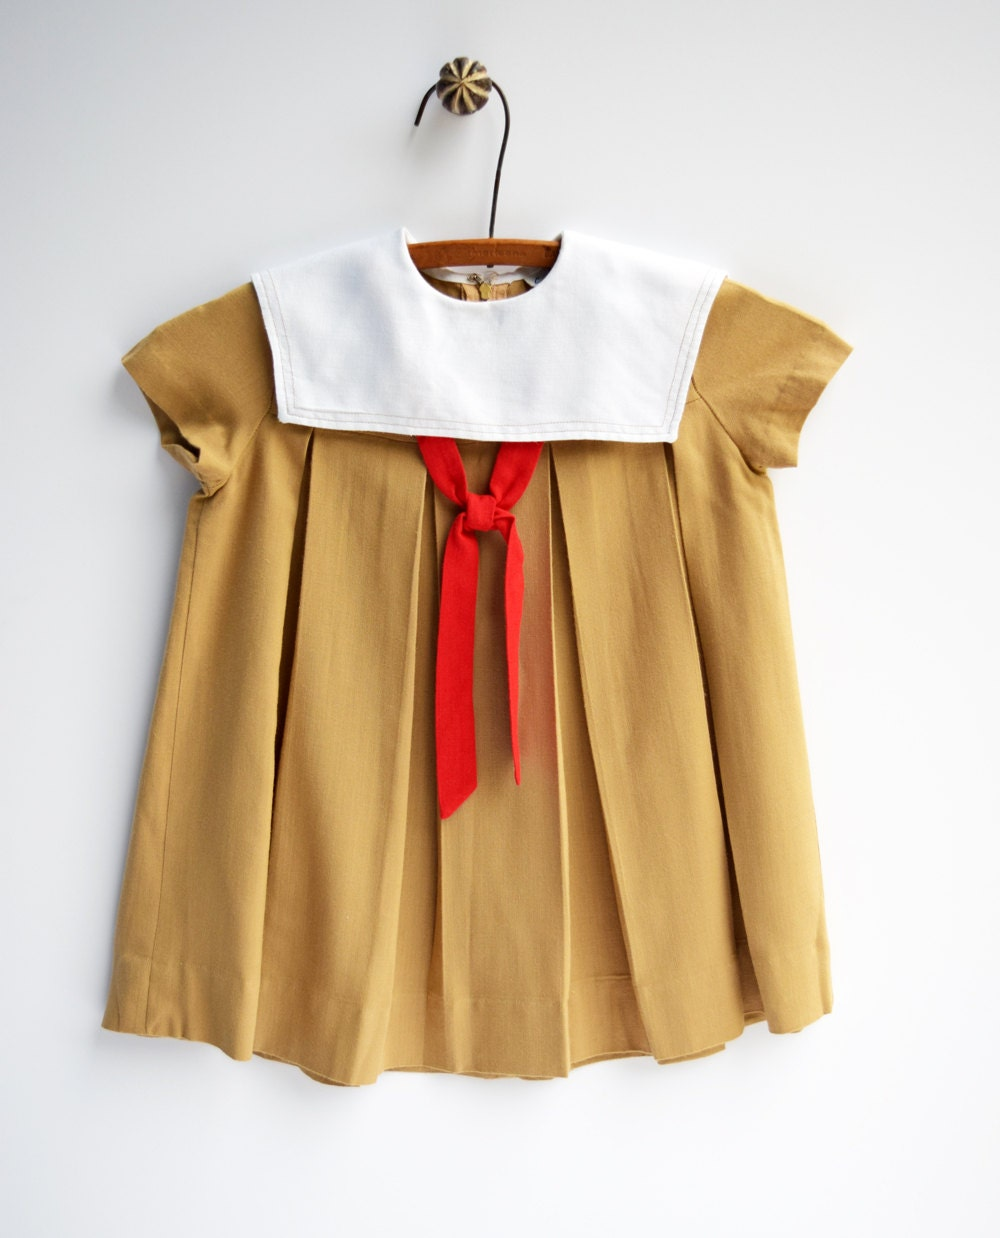 Tan and Red Sailor Toddler Dress Vintage Children's